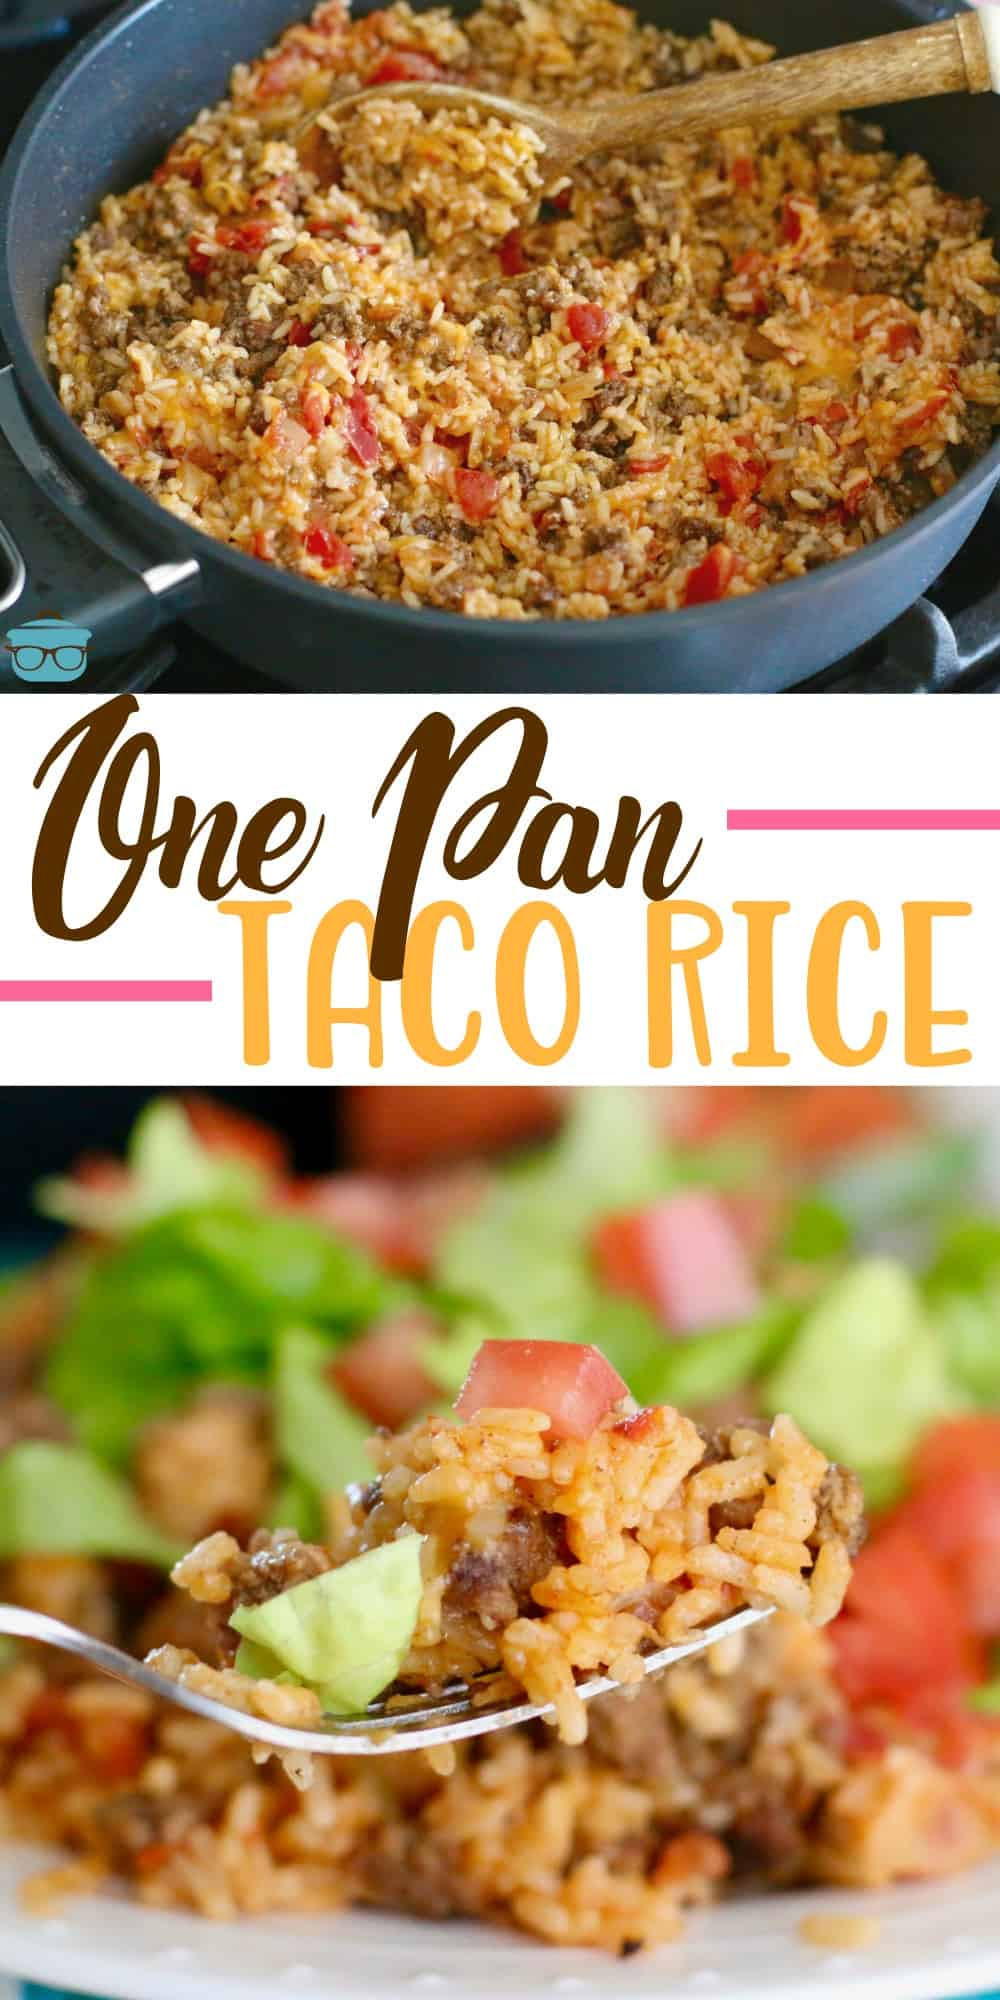 One Pan Taco Rice Dinner recipe is a whole meal in one. Ground beef, taco seasoning, salsa, rice and cheese. A family favorite meal! #tacorice #maindish #sidedish